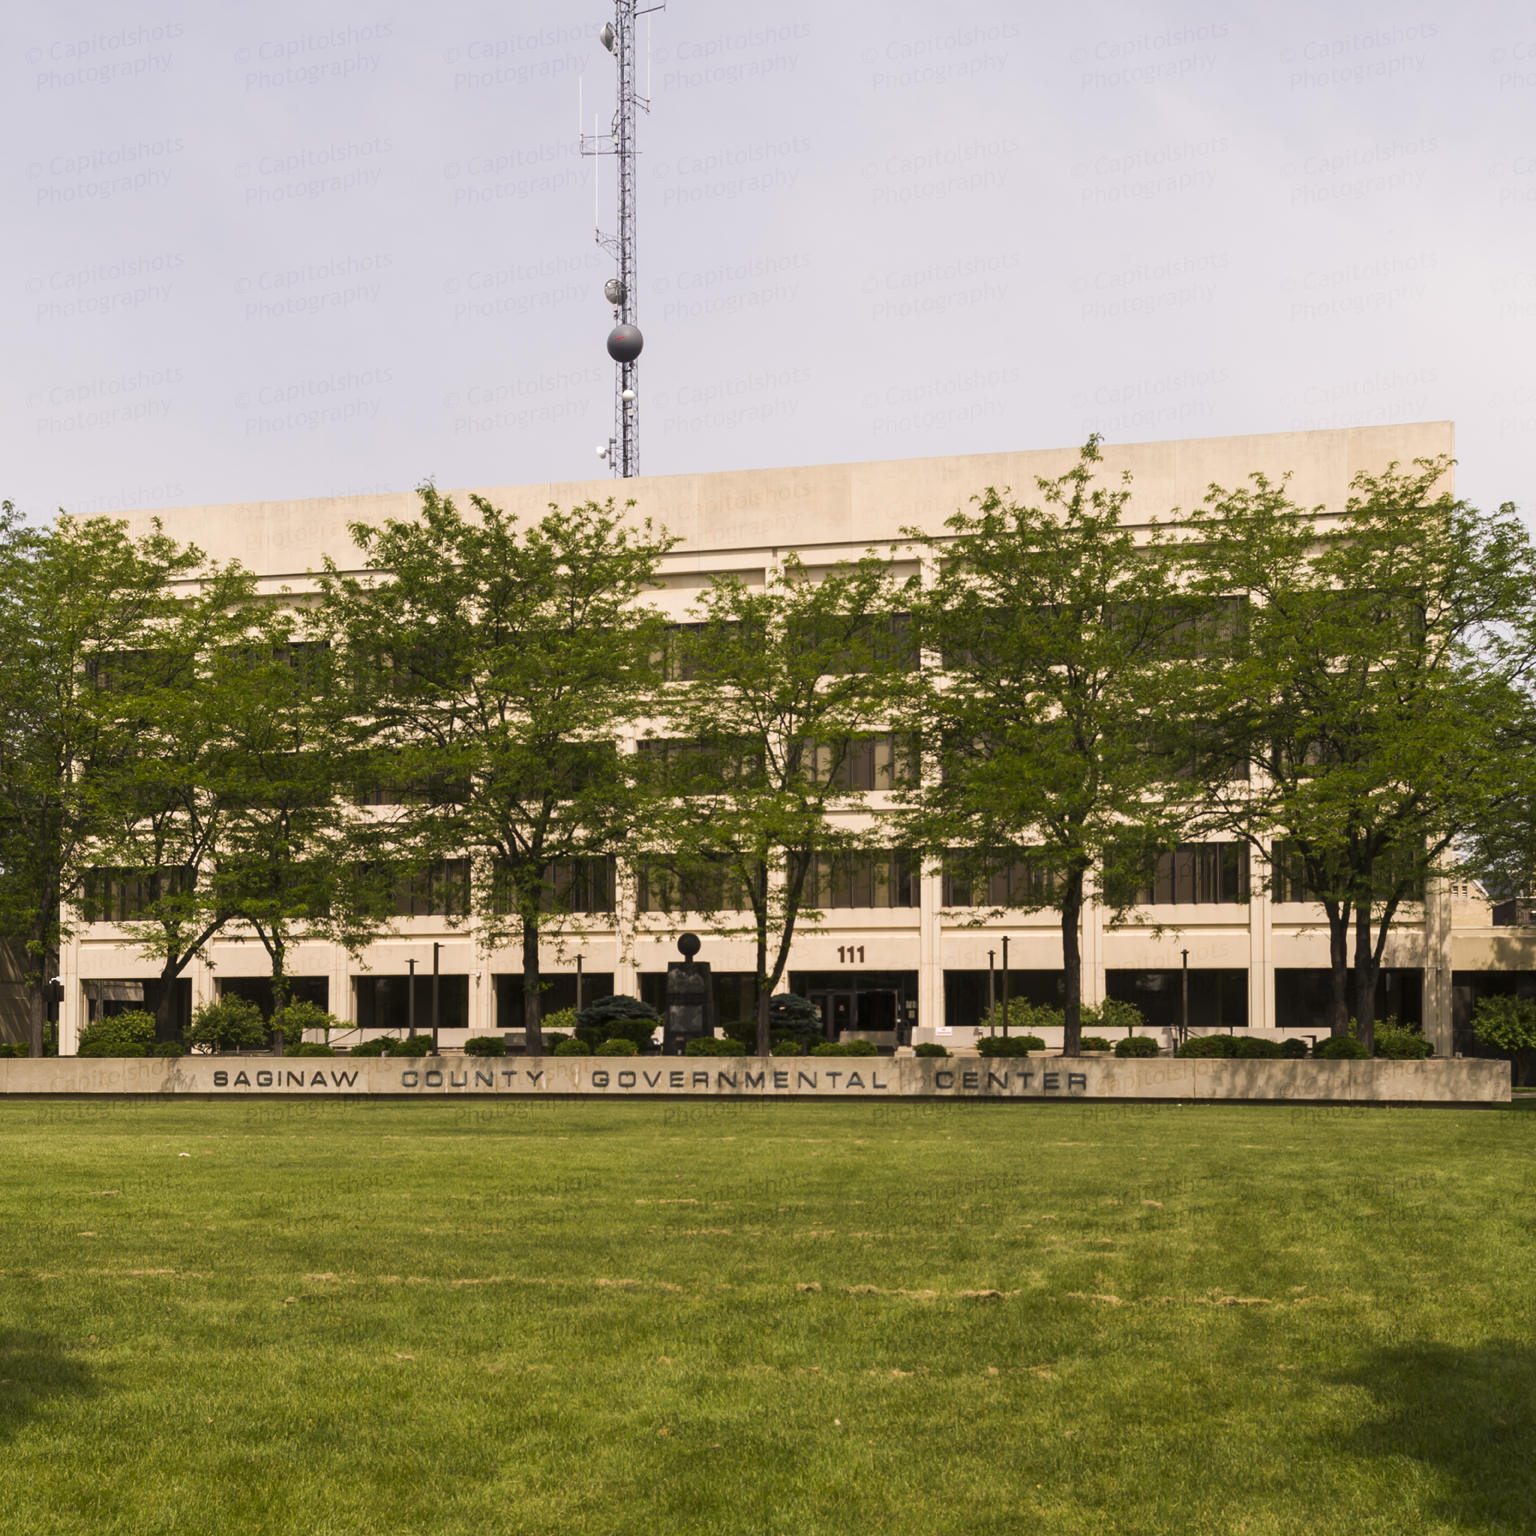 Saginaw County Courthouse